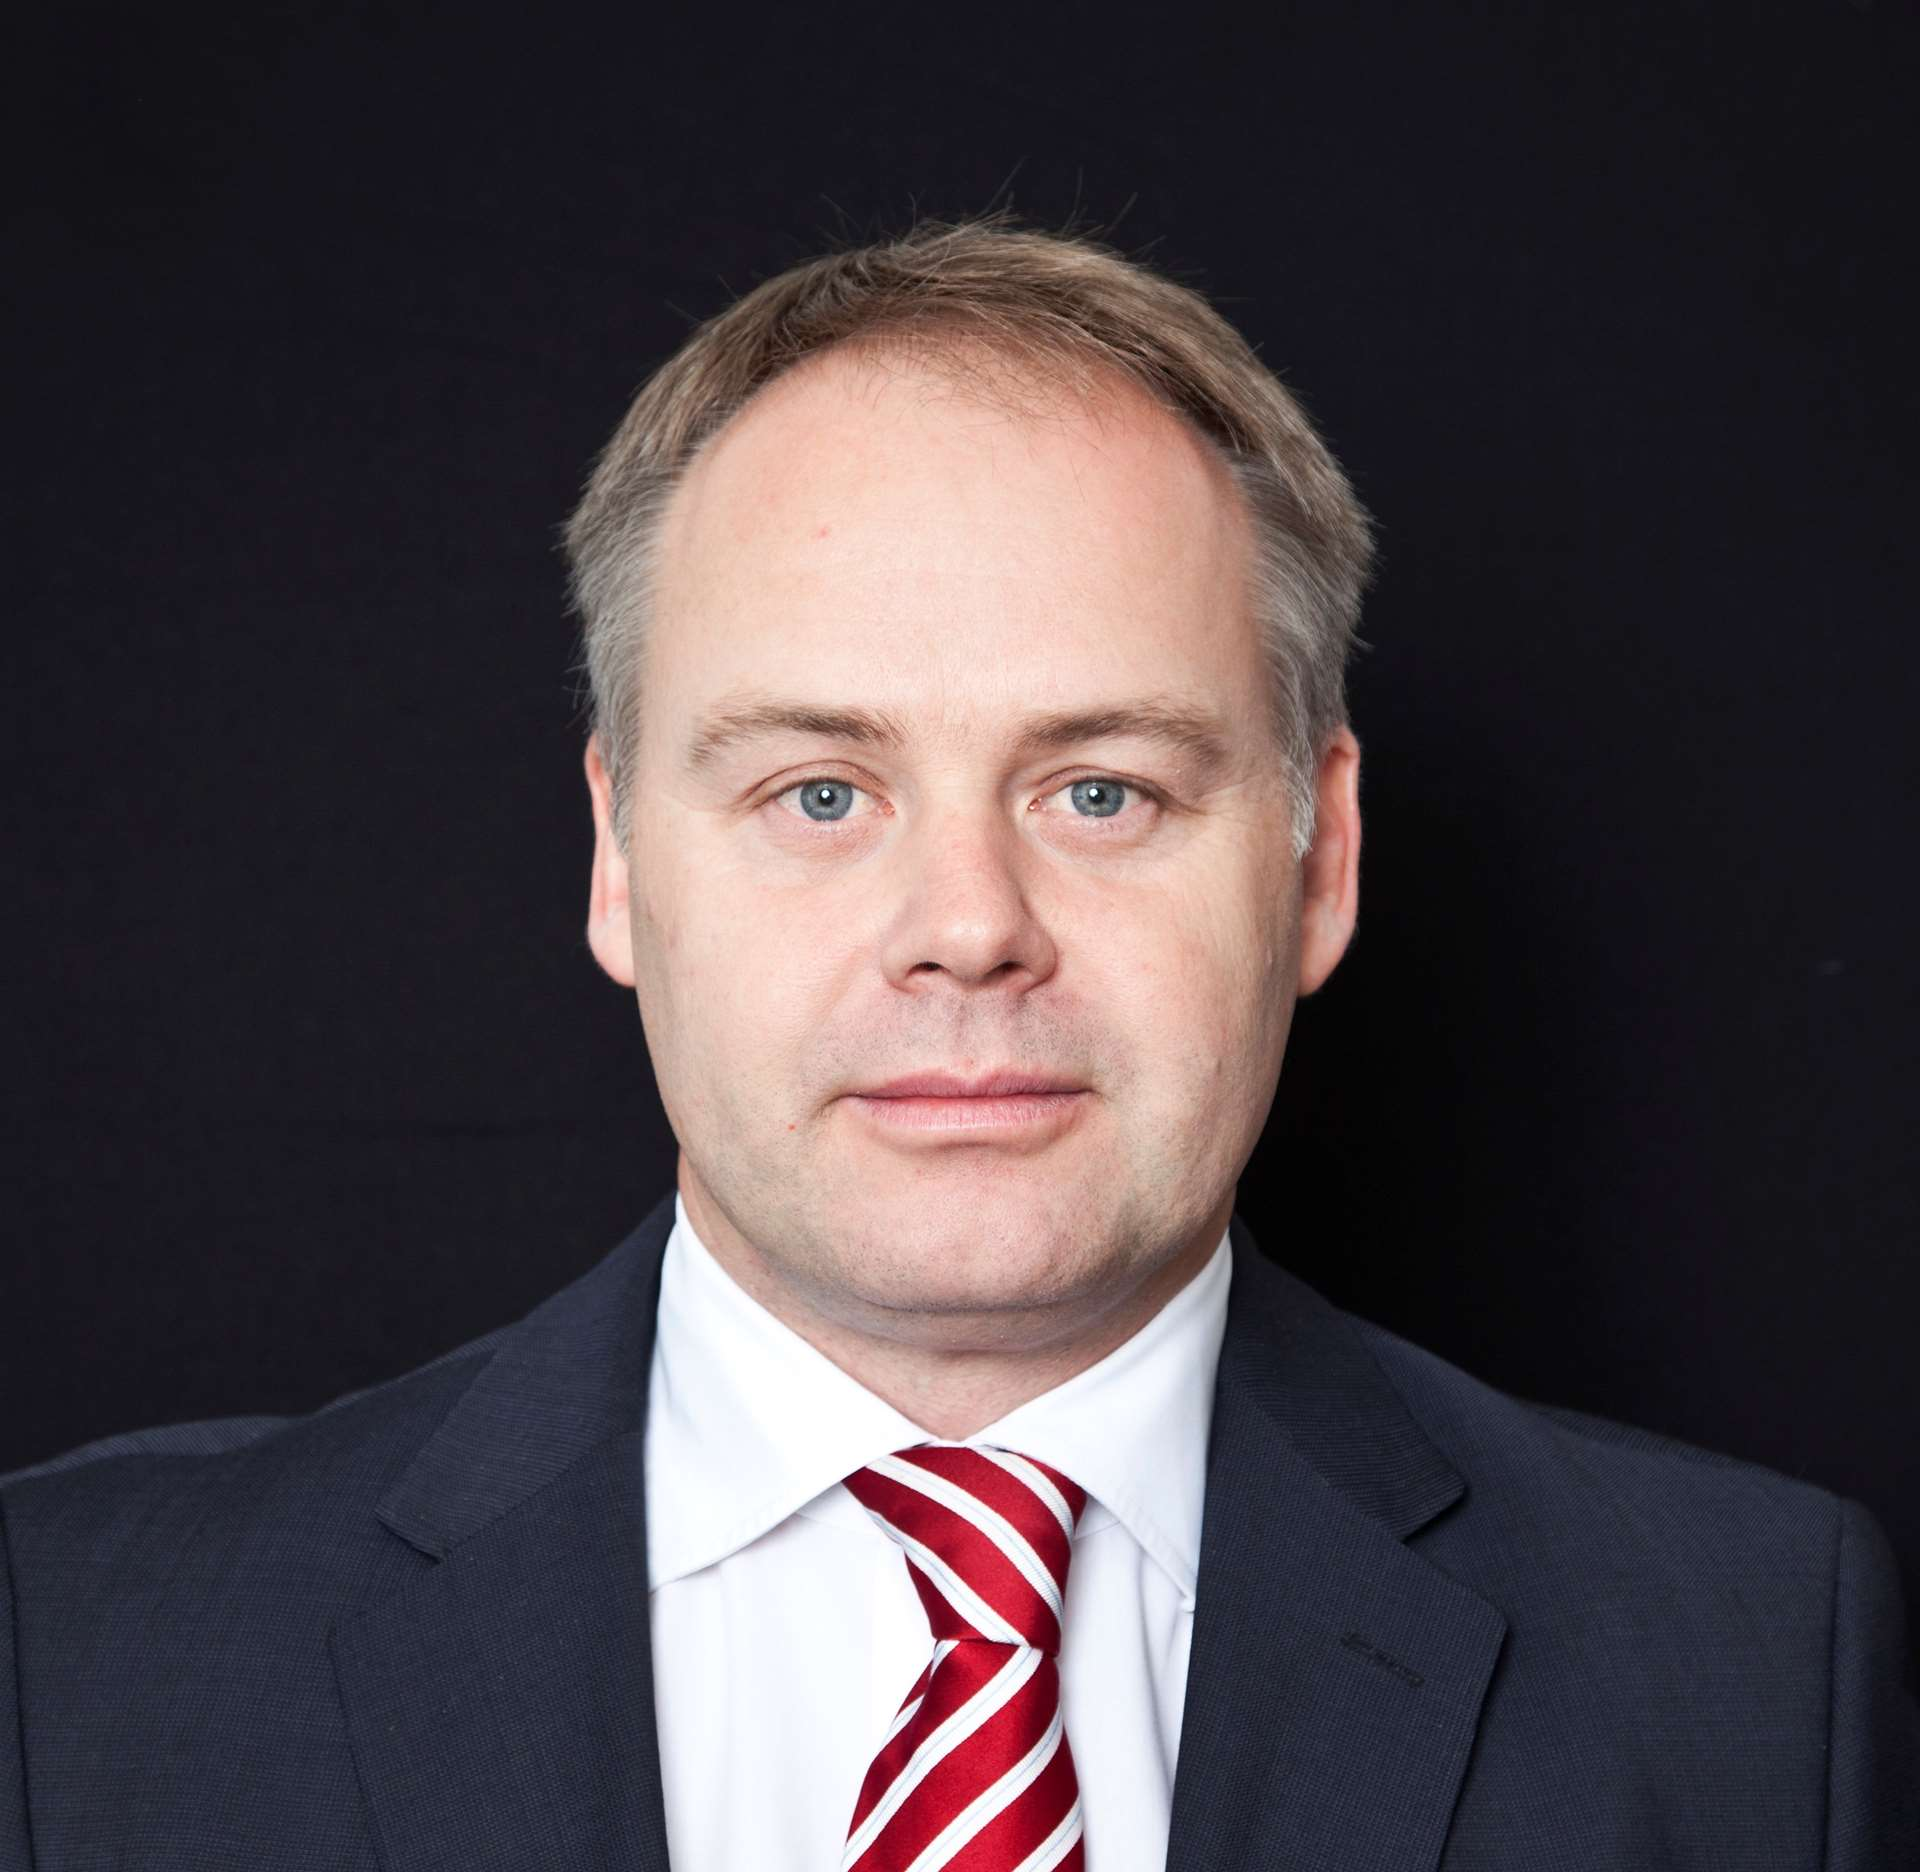 Hrvoje Stipić, CEO and Partner